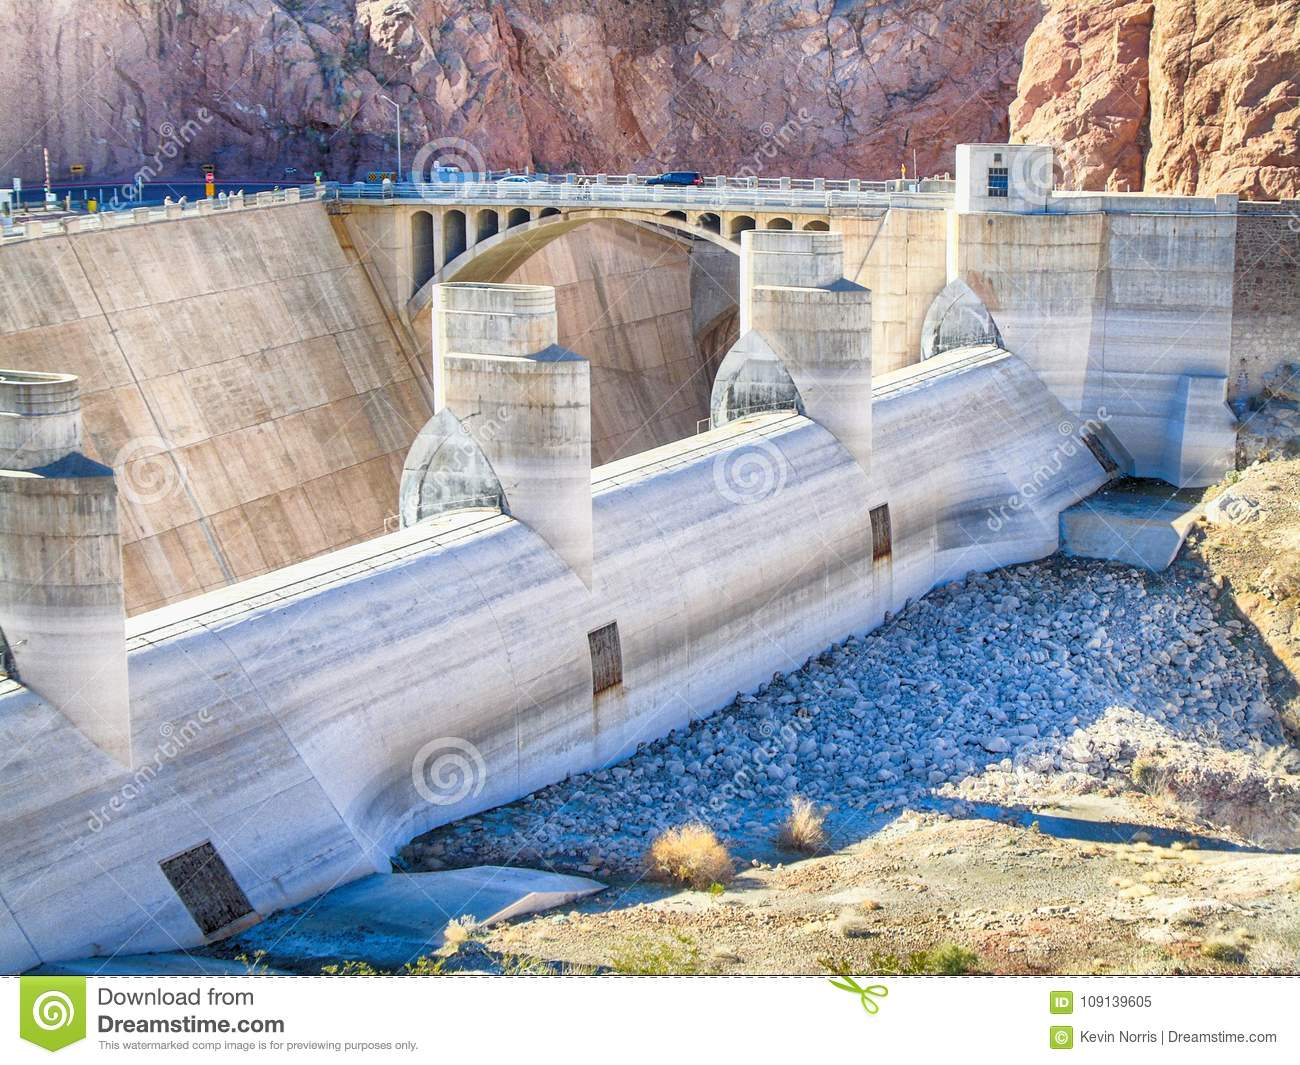 Overflow at Hoover Dam stock image  Image of arizona - 109139605